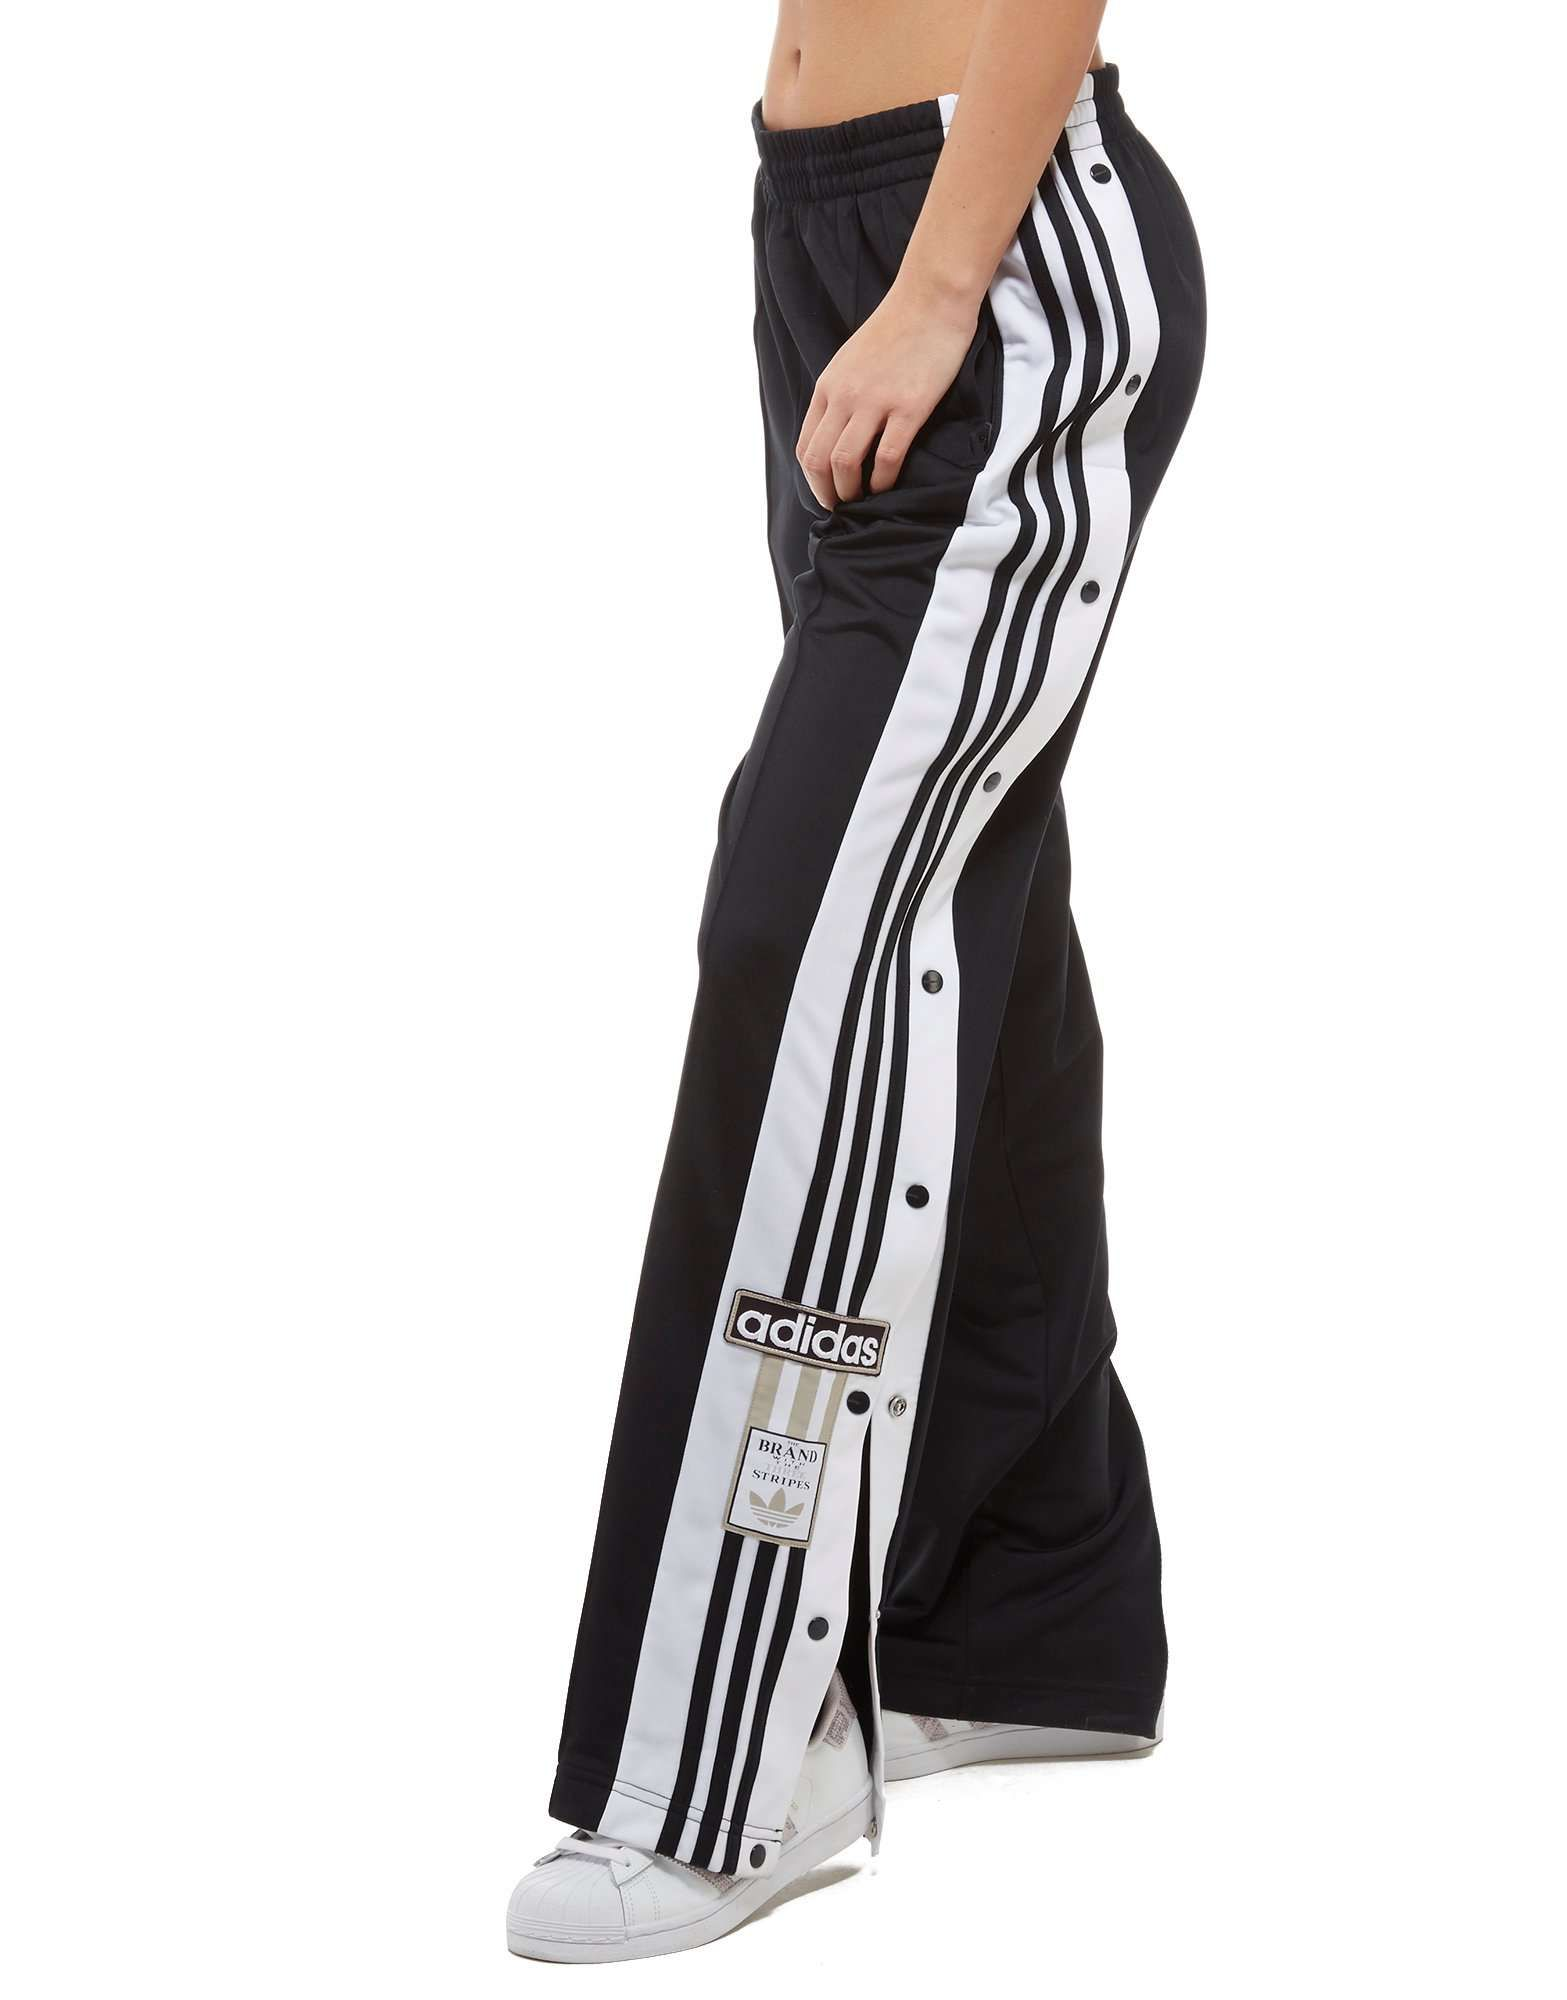 adidas Originals Adibreak Popper Pants | Musthave | Fashion